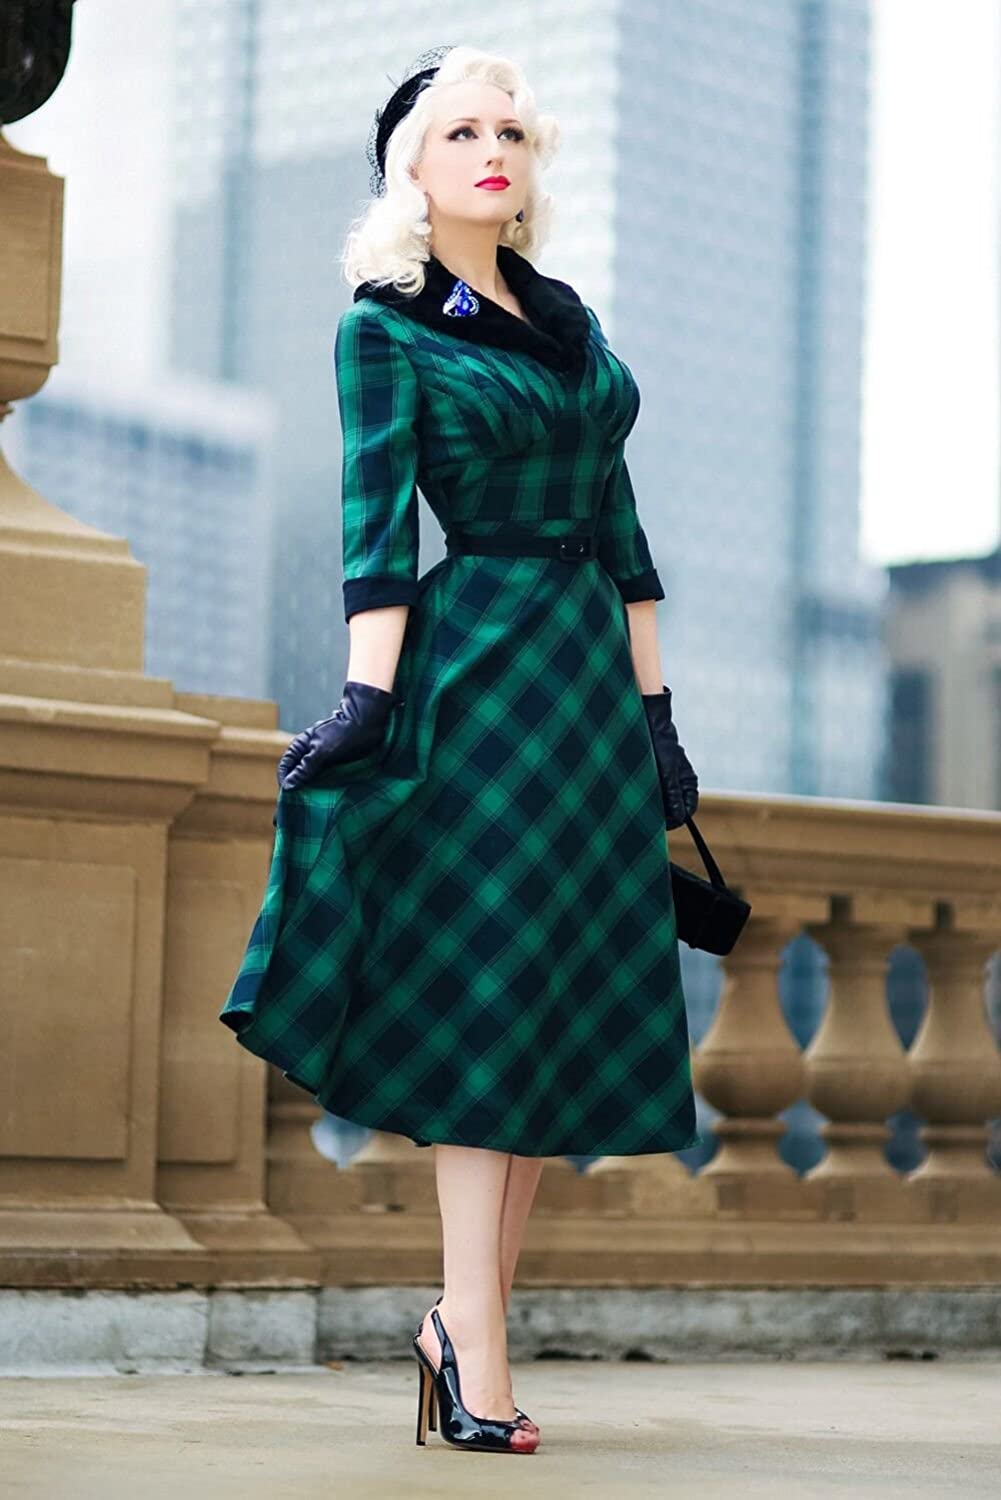 1950s Housewife Dress | 50s Day Dresses Voodoo Vixen Retro Vintage Lola Plaid Faux Fur Collar 3/4 Sleeve Swing Dress $81.95 AT vintagedancer.com